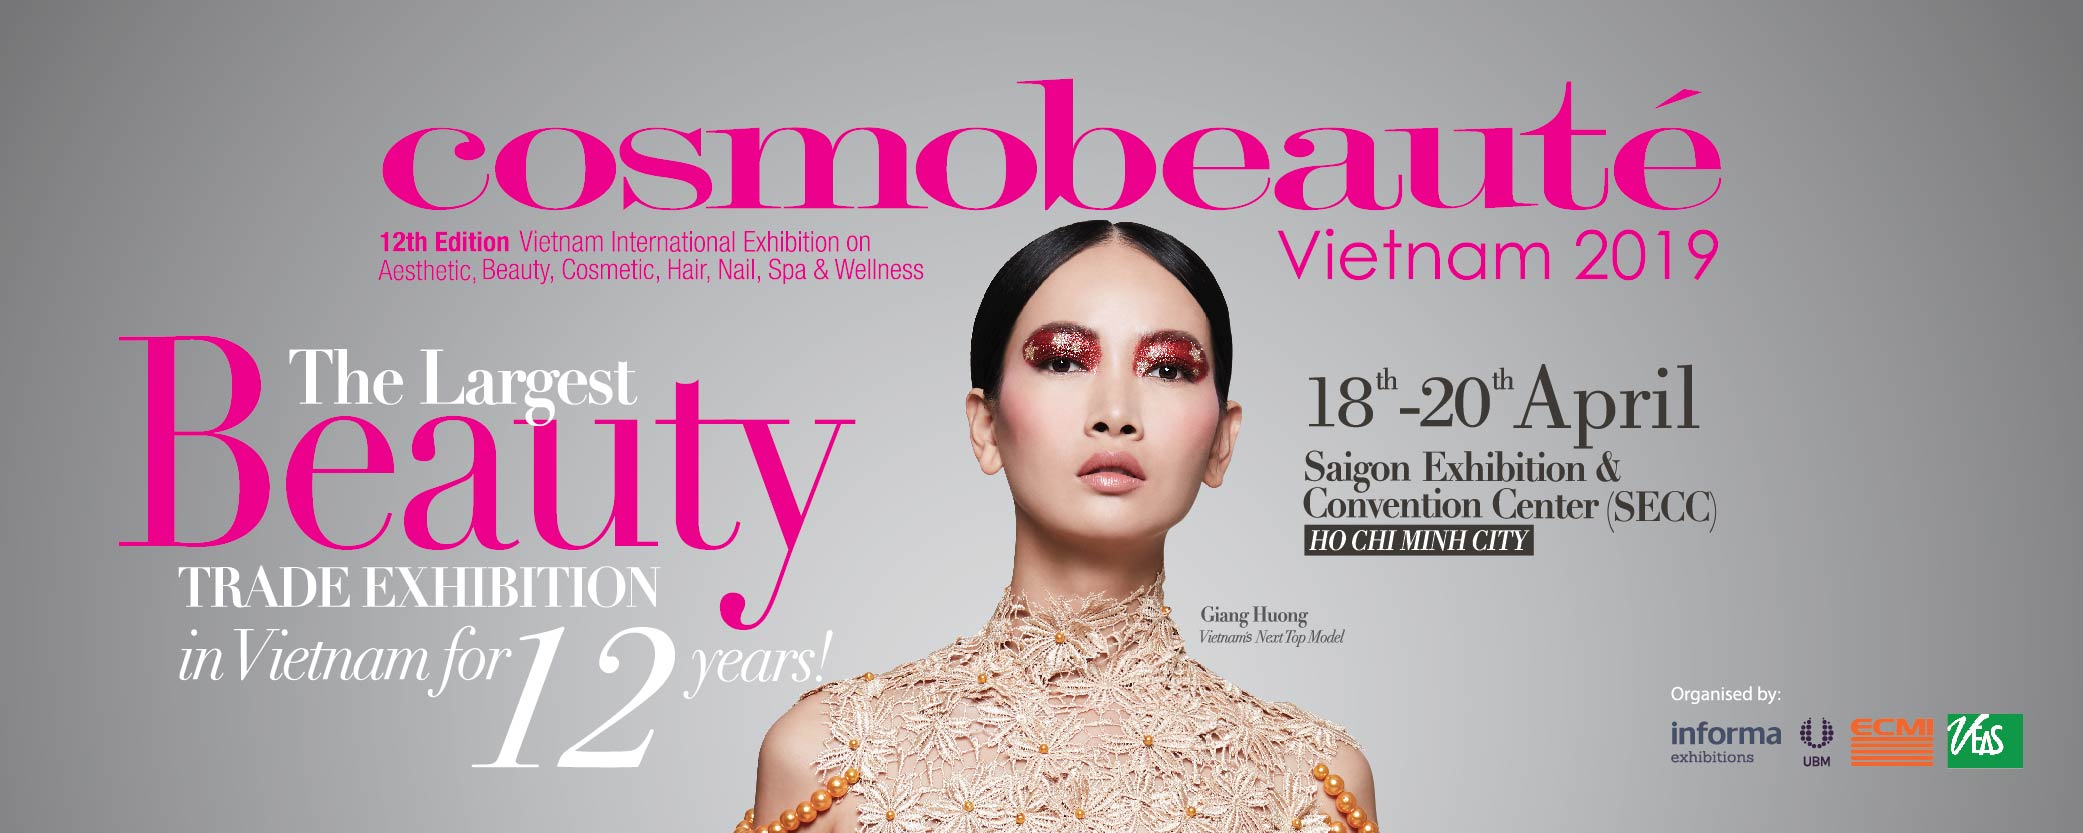 2019 Vietnam Cosmobeaute expo - Laser Hair Removal